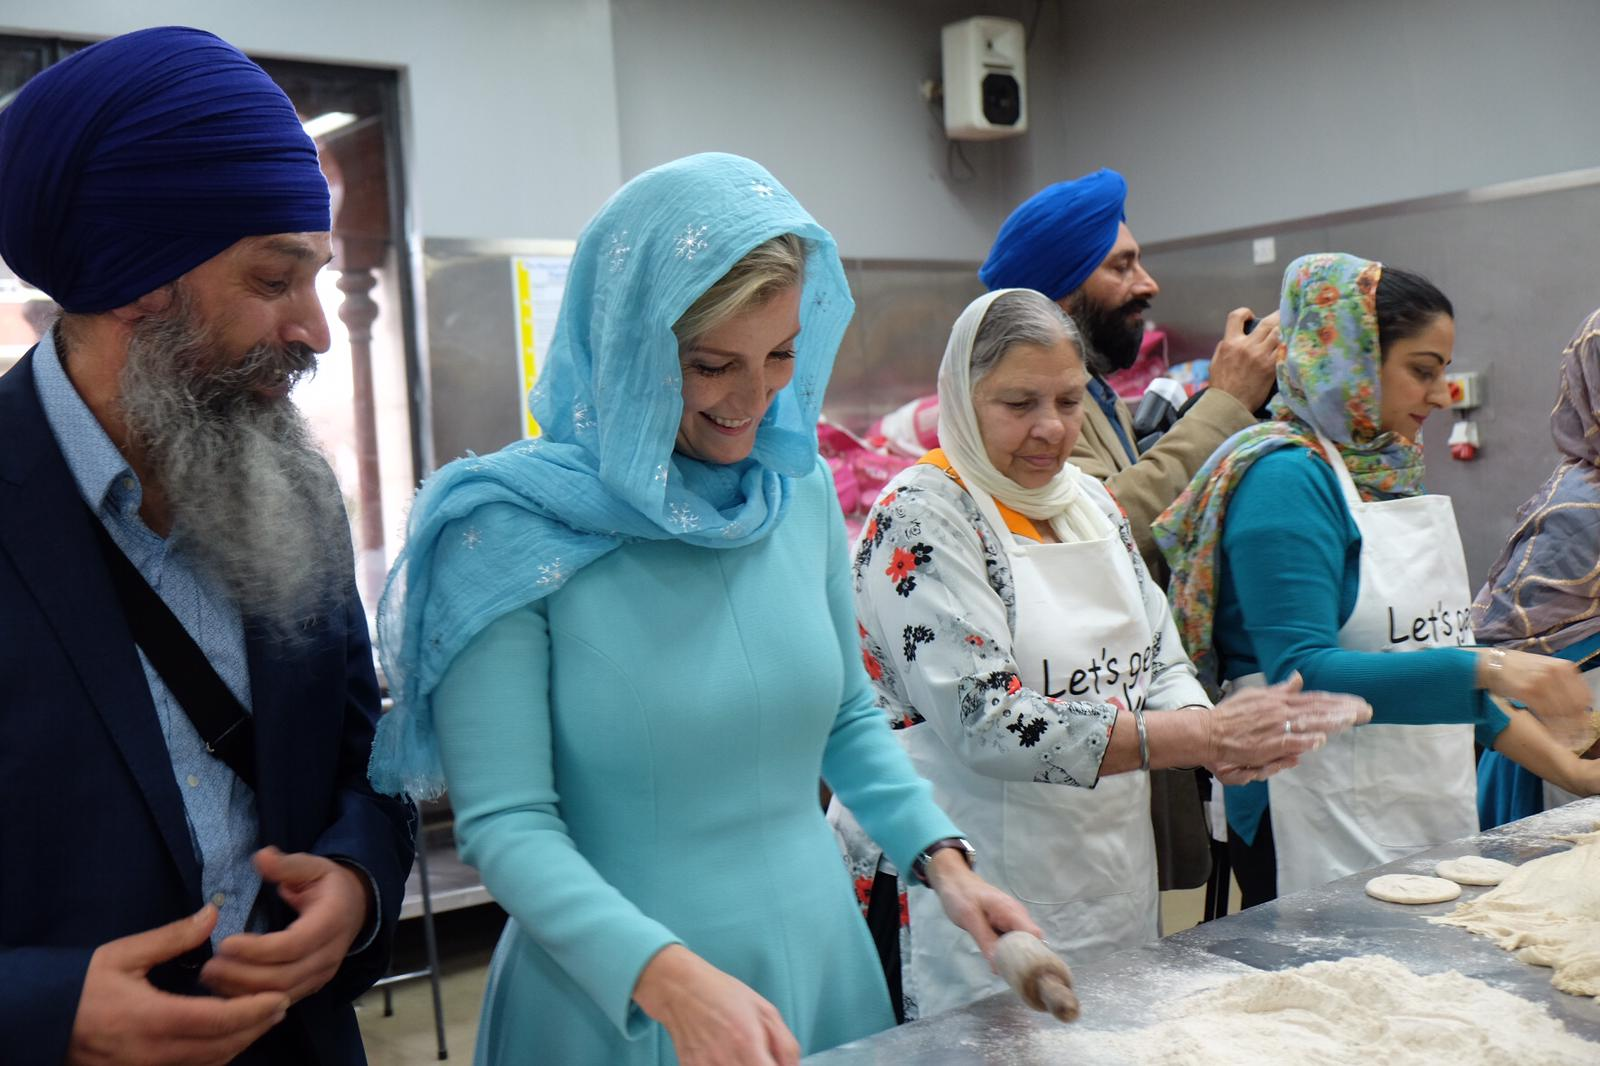 The Countess of Wessex visits a Sikh temple